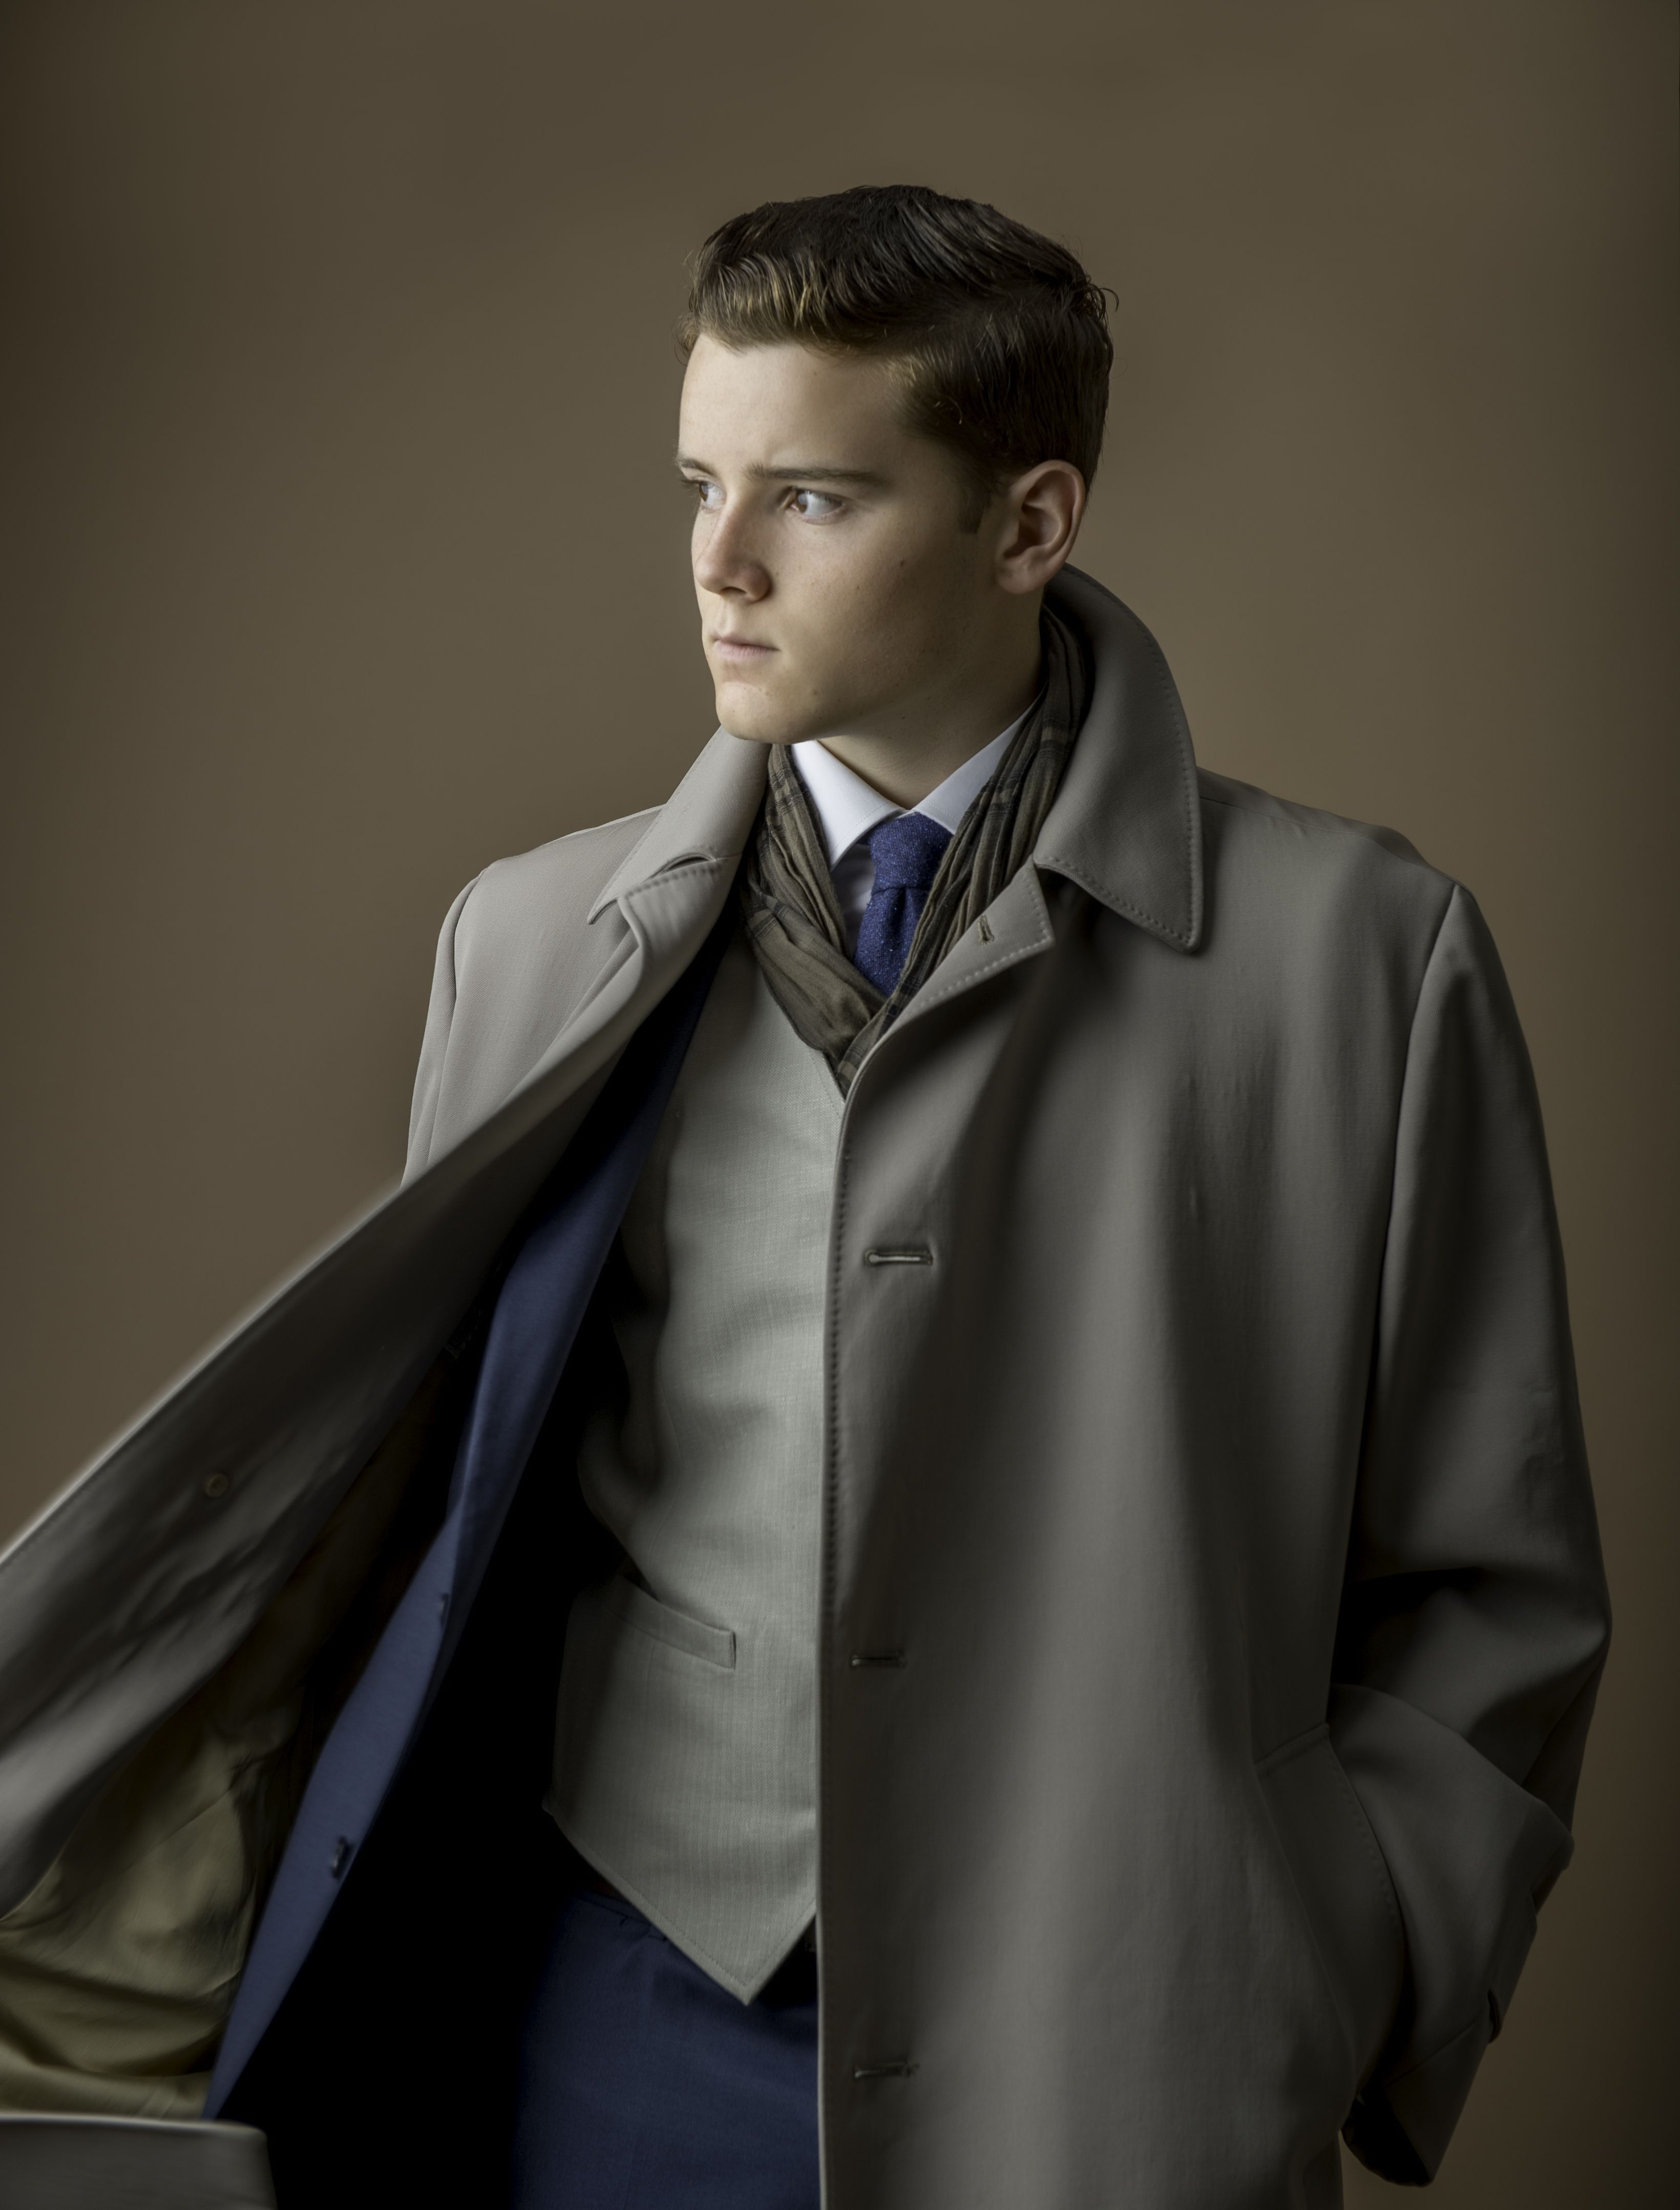 mans fashion young man teen topaz suit handsome guy